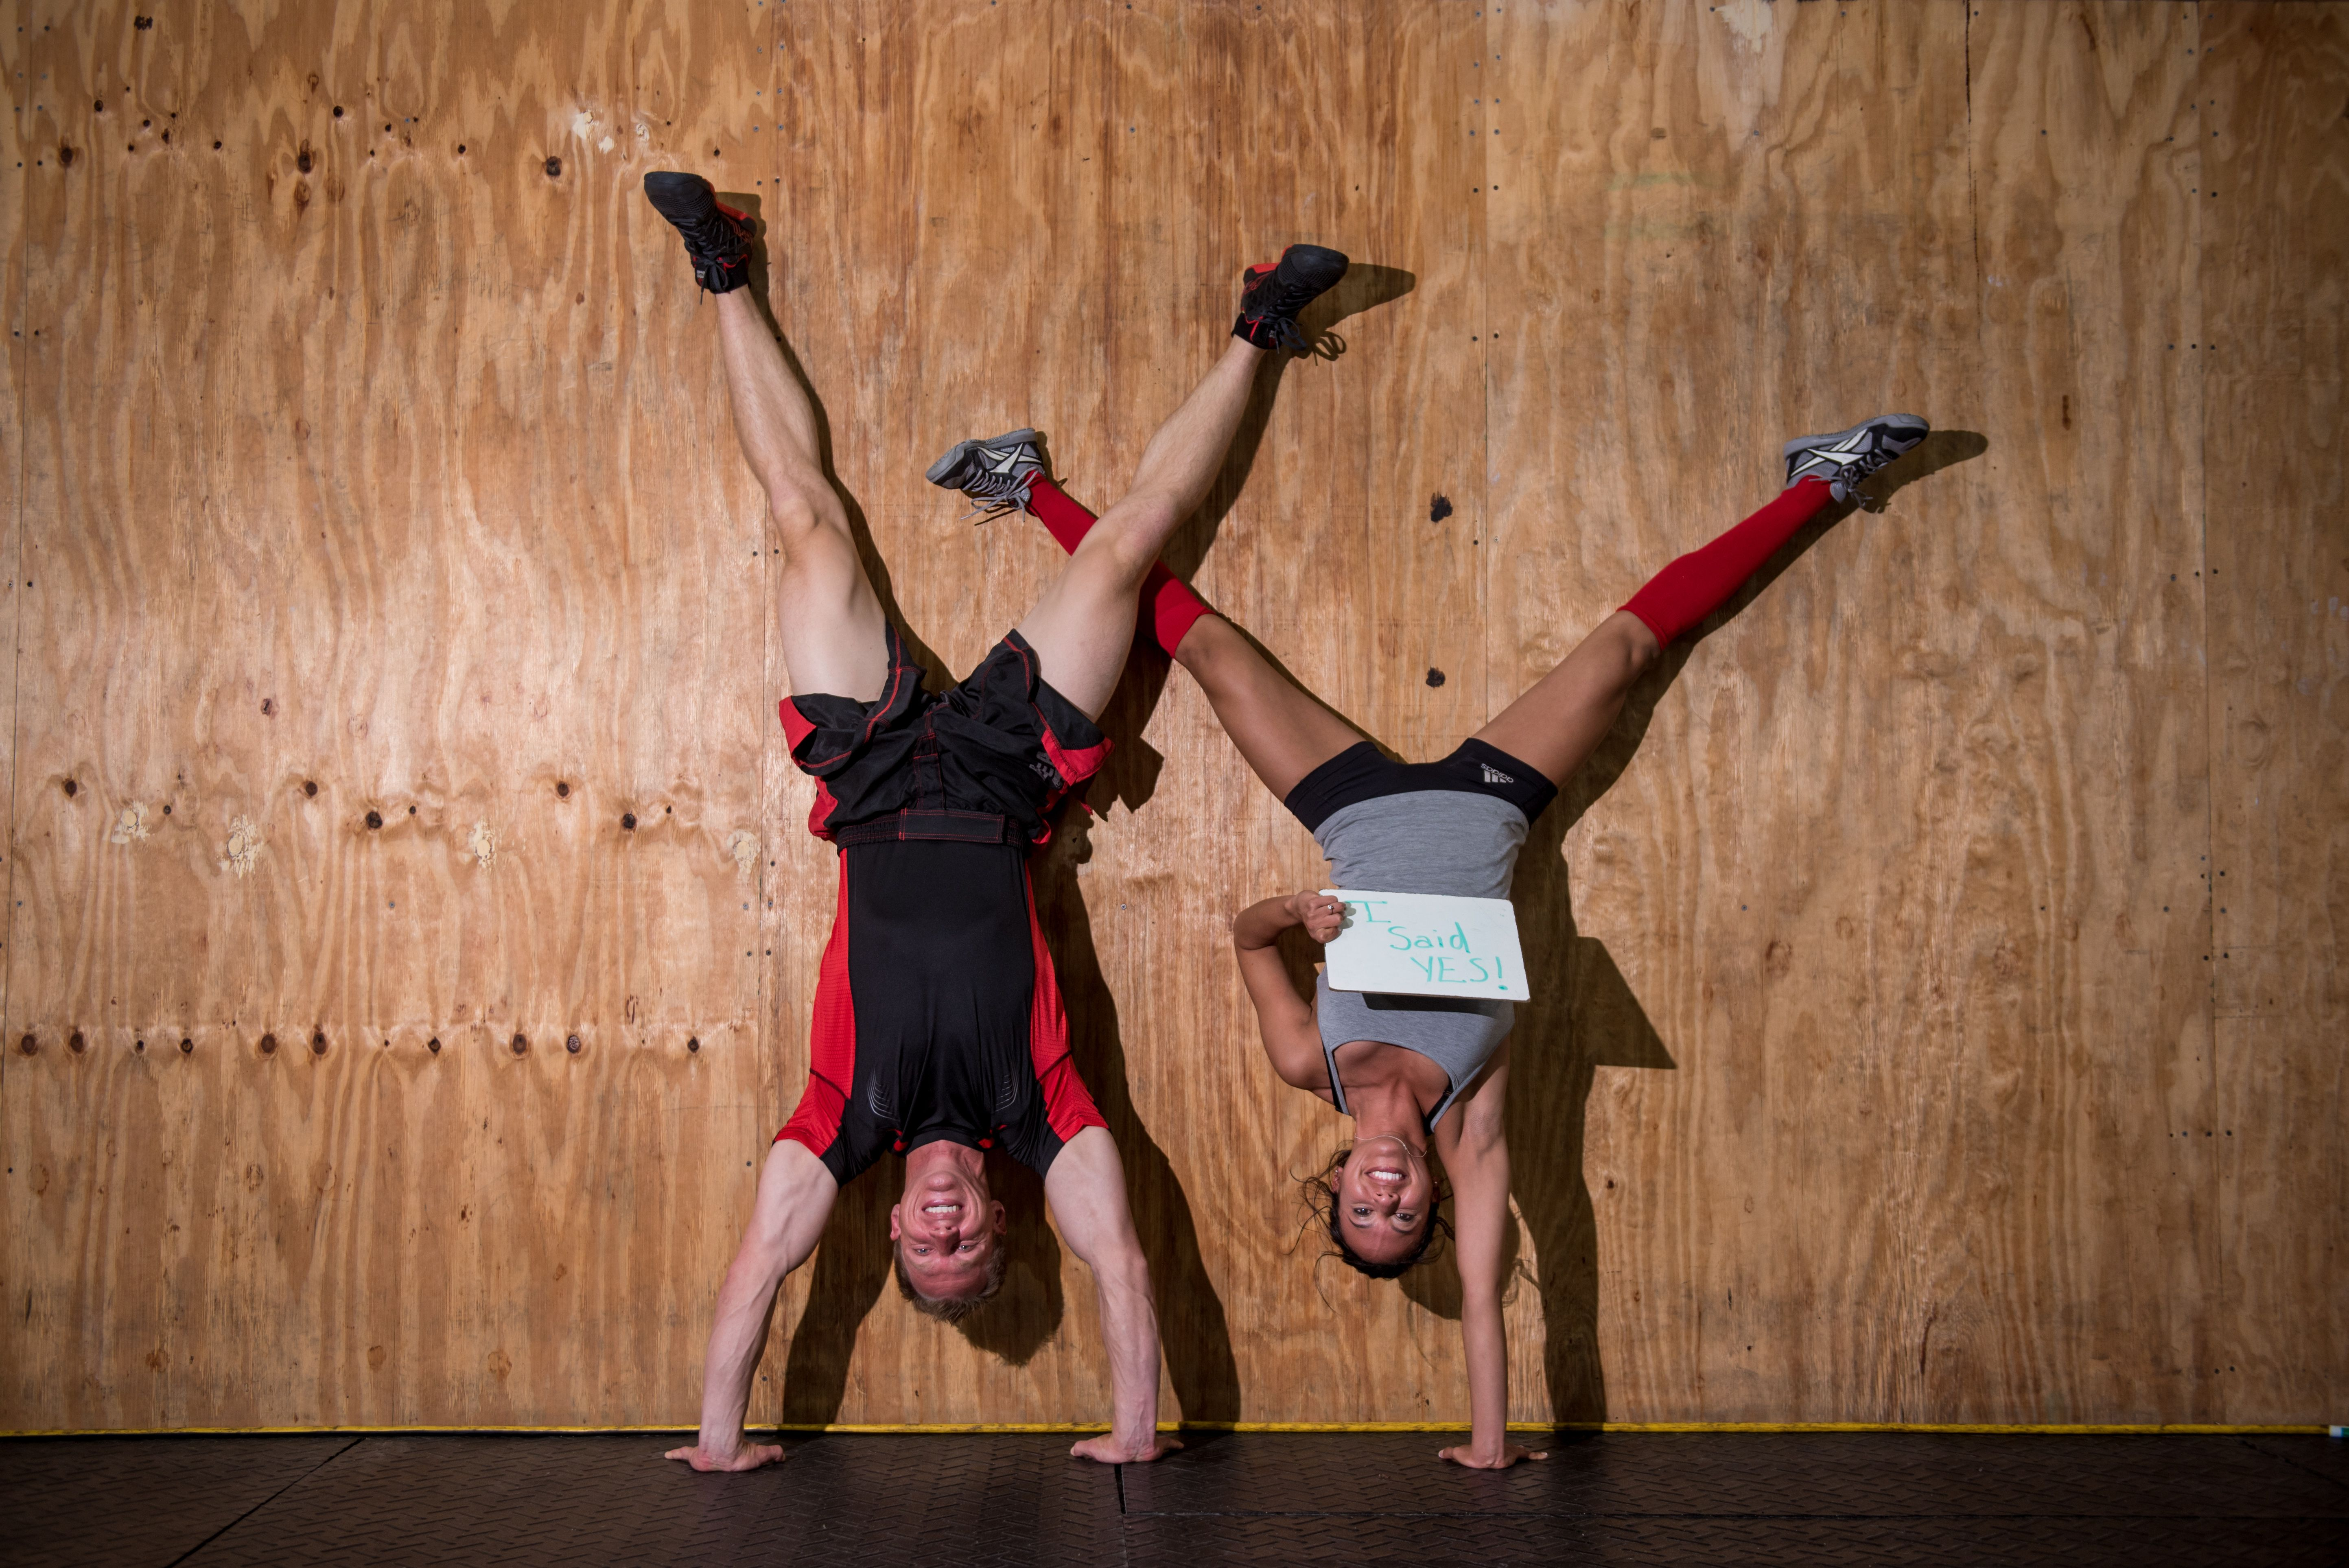 CrossFit Couples Engagement Photos Are Nothing Short Of Badass